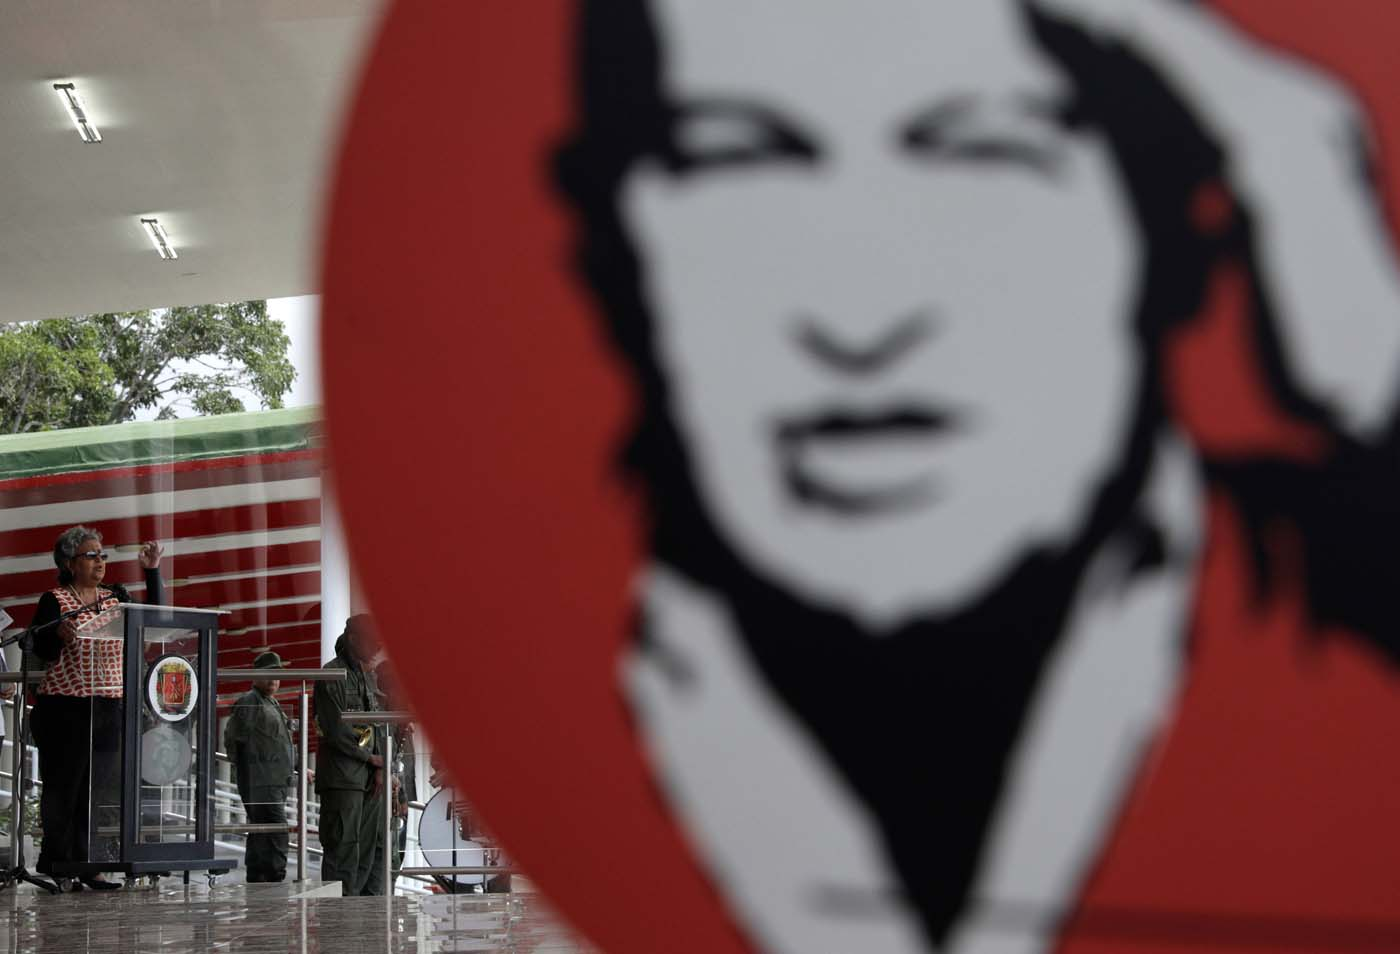 Venezuela's National Electoral Council (CNE) President Tibisay Lucena is pictured through a glass with a picture of Venezuela's late President Hugo Chavez, as she speaks during a ceremony ahead of the regional elections which will be held on October 15, in Caracas, Venezuela October 9, 2017. REUTERS/Ricardo Moraes